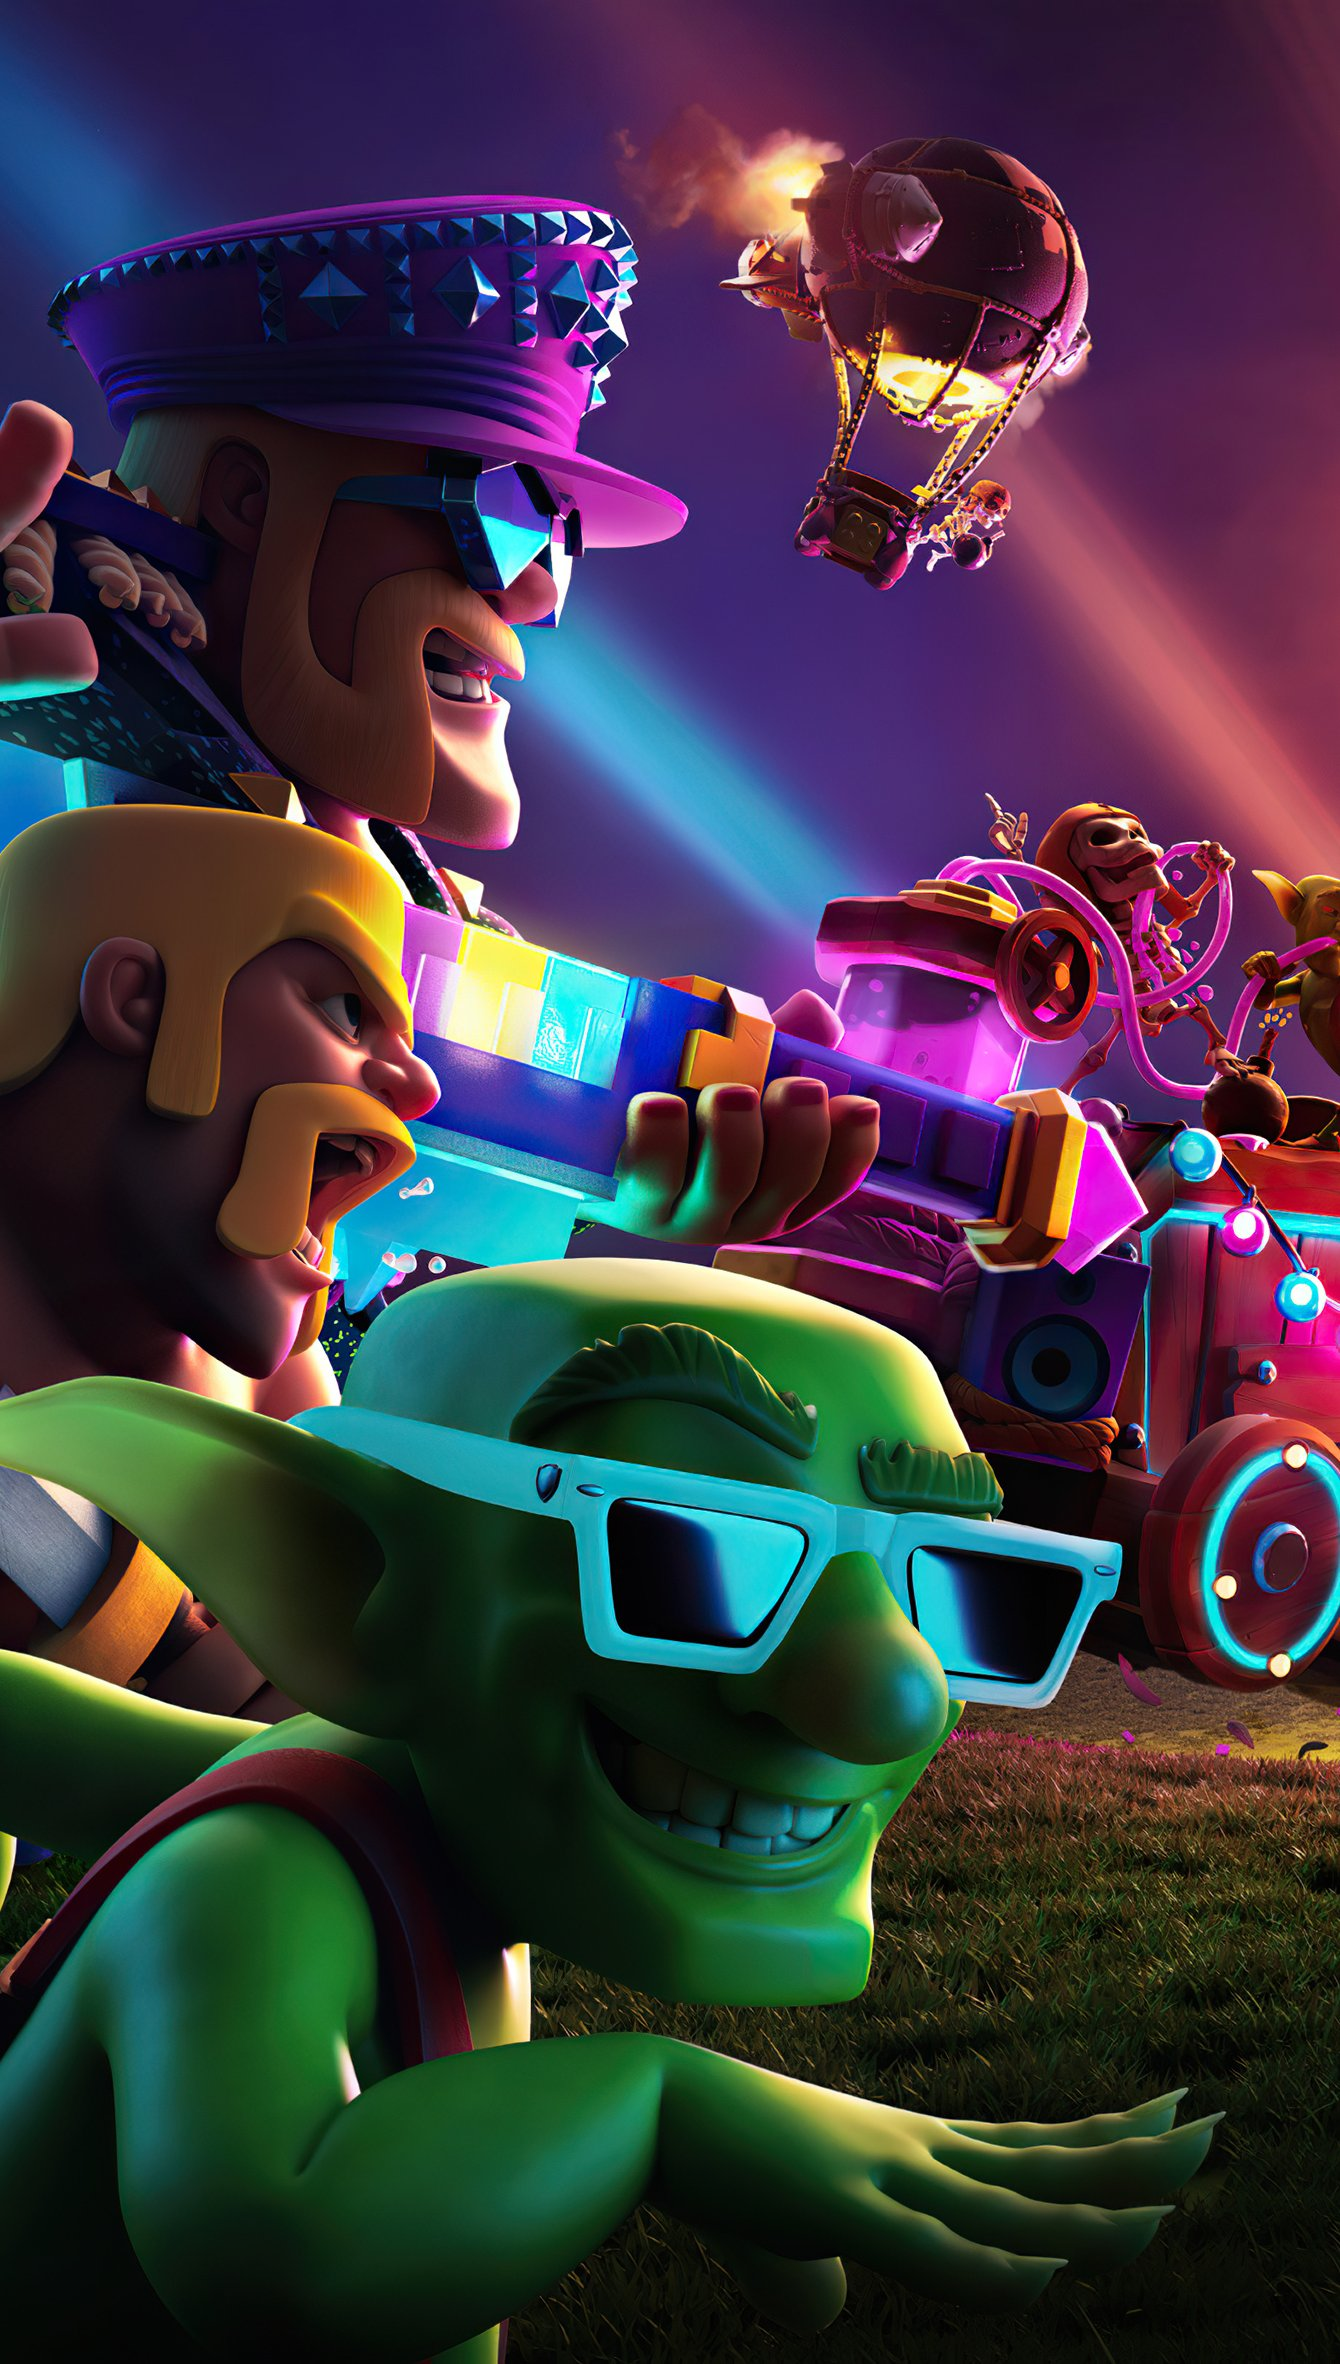 Wallpaper Clash of Clans 9th anniversary Vertical